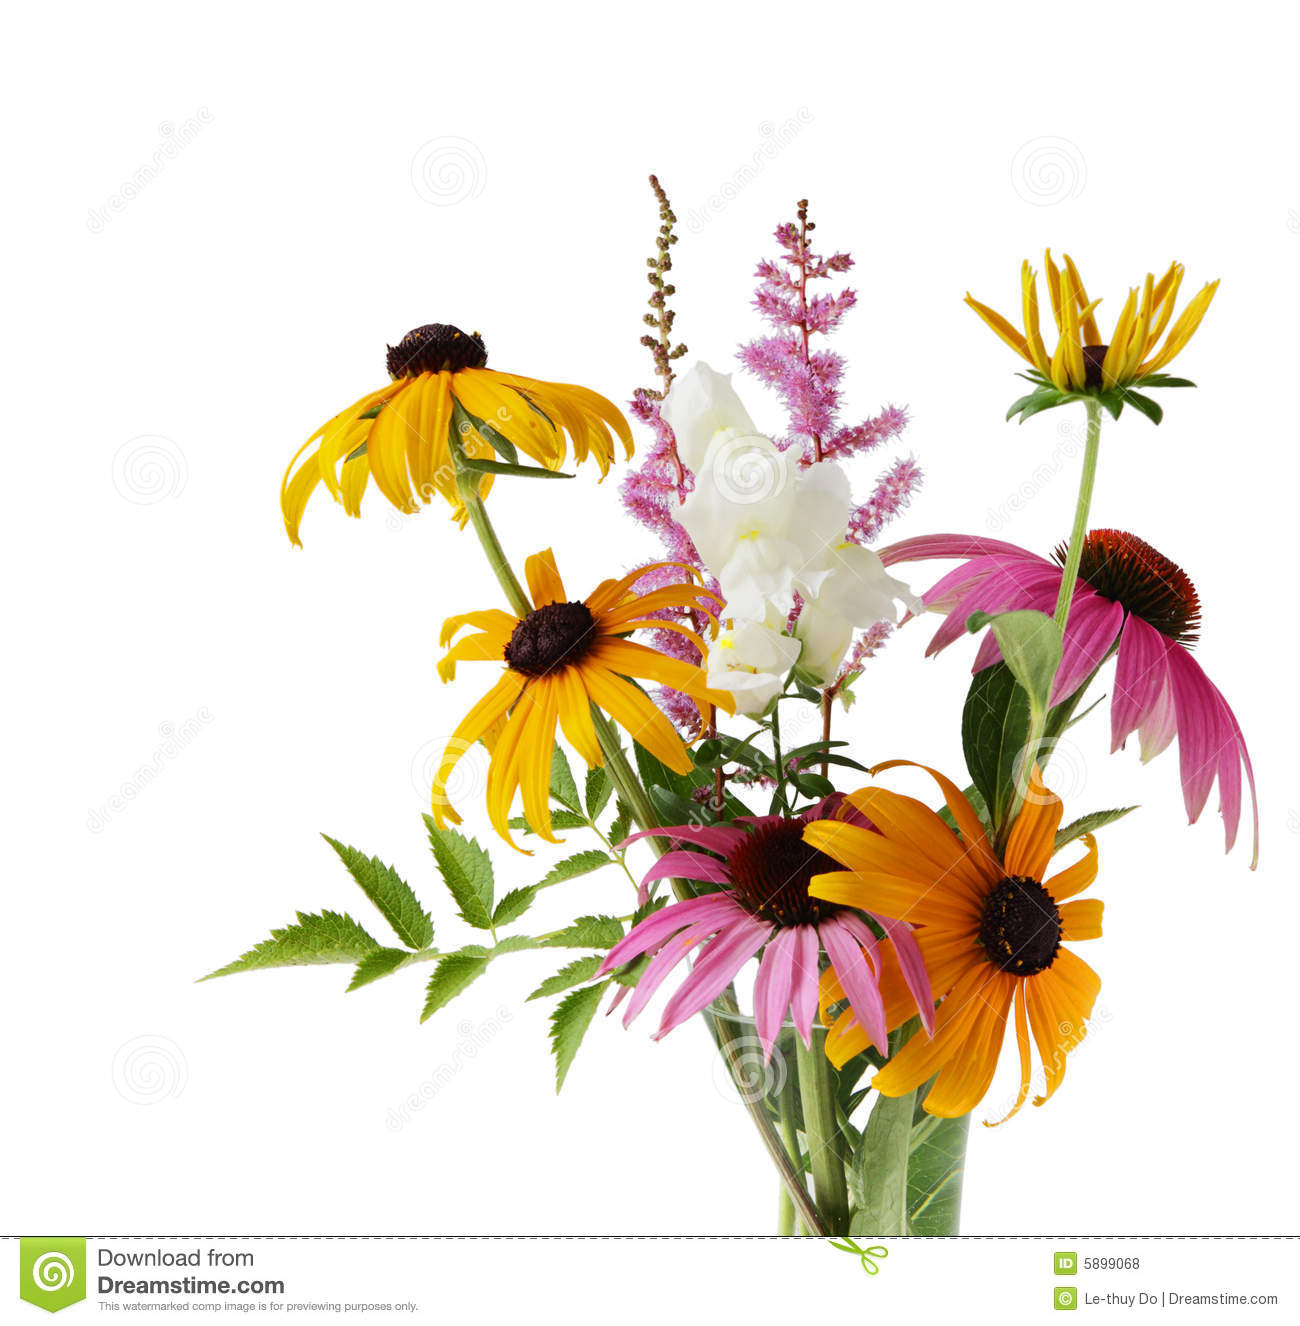 Spirea and daisy royalty free stock image cartoondealer for Flowers union square nyc